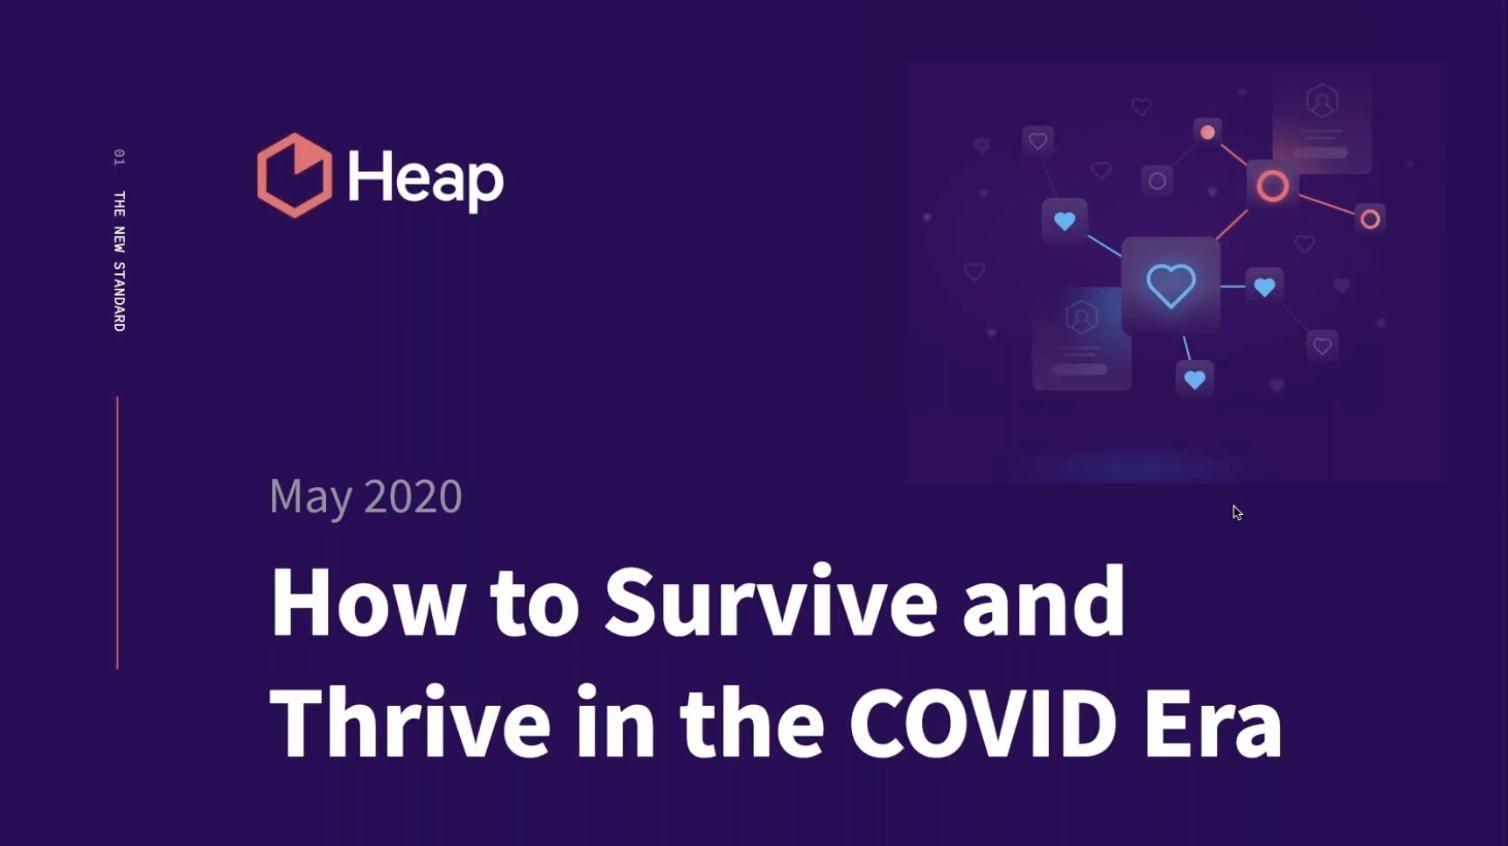 Survive and Thrive in Covid Era